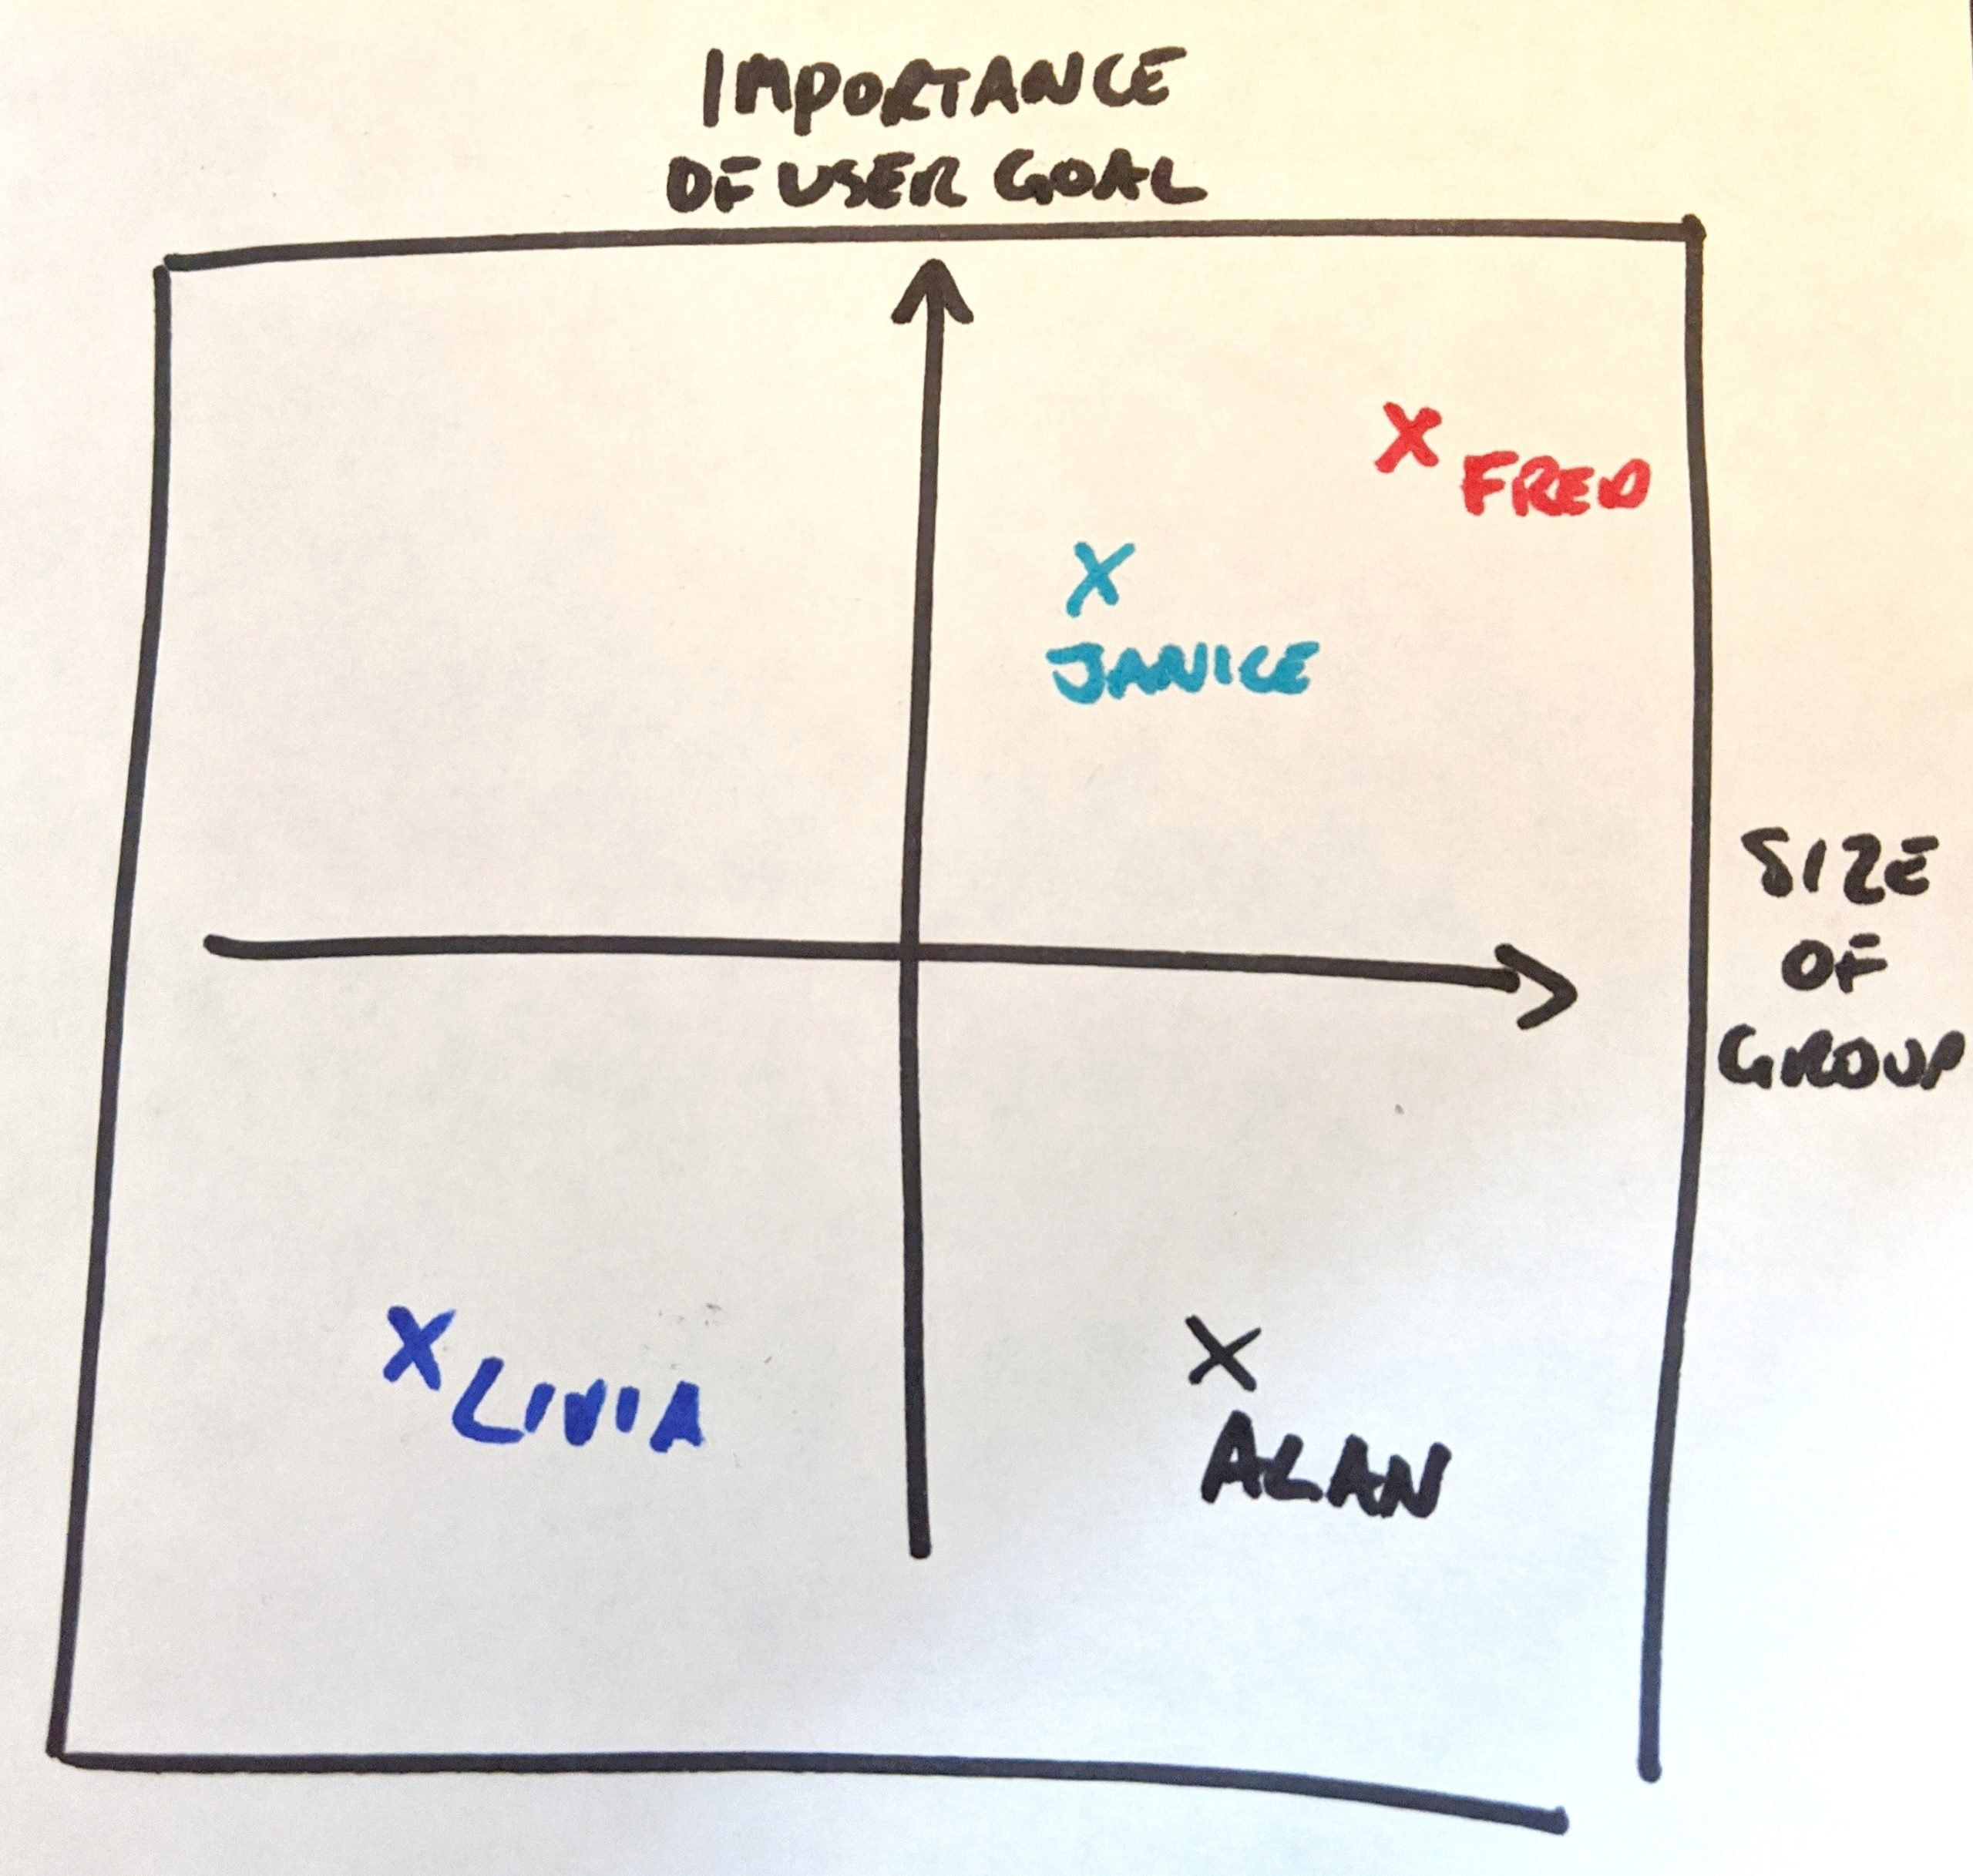 Hand-drawn two-by-two grid plotting user personas by importance of user goal versus size of user group (Credit: Jock Busuttil / Product People Limited)